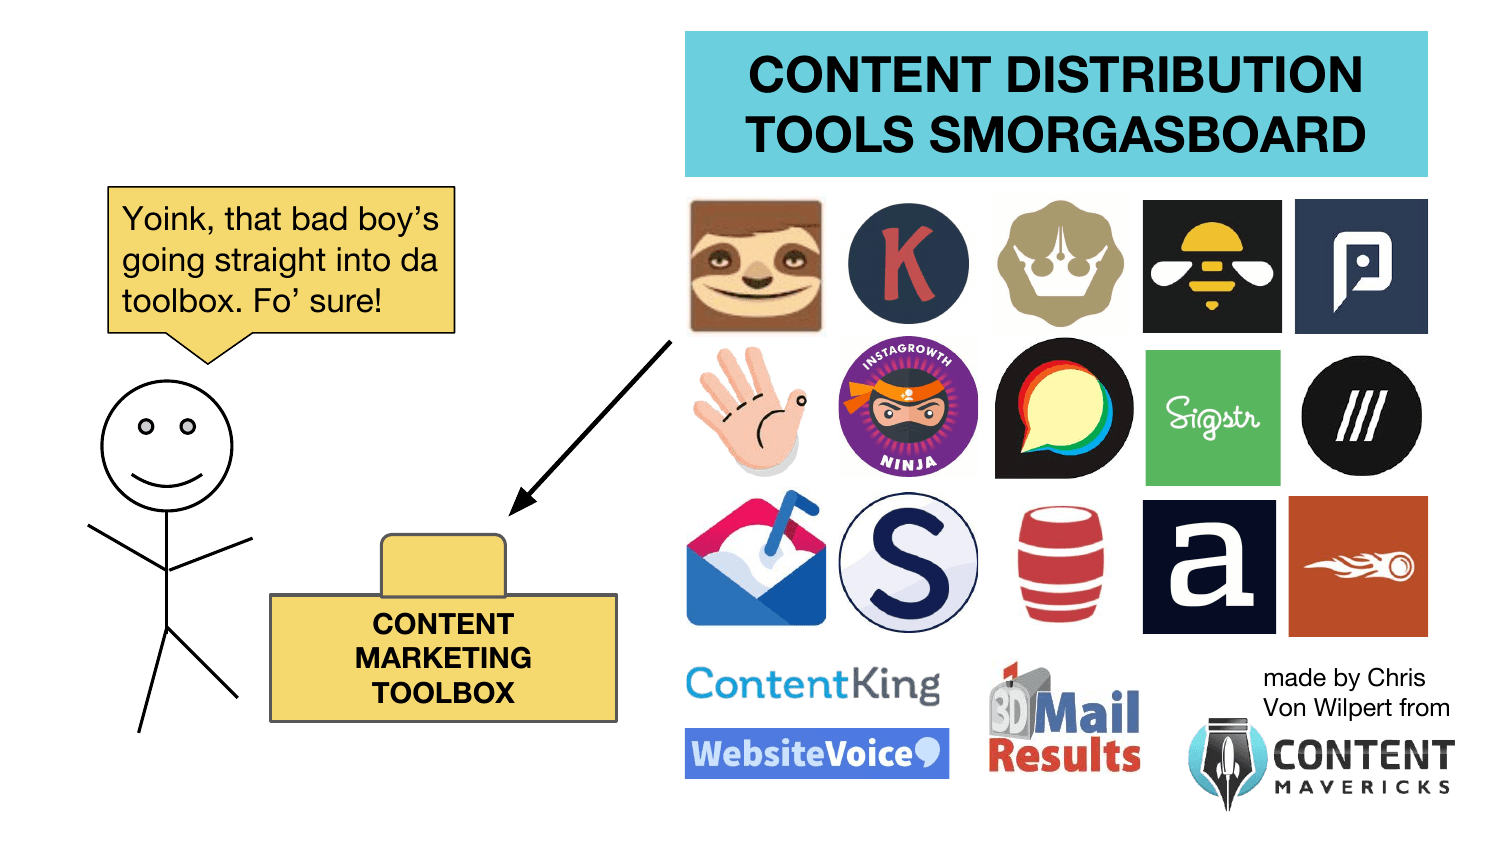 content marketing toolbox image